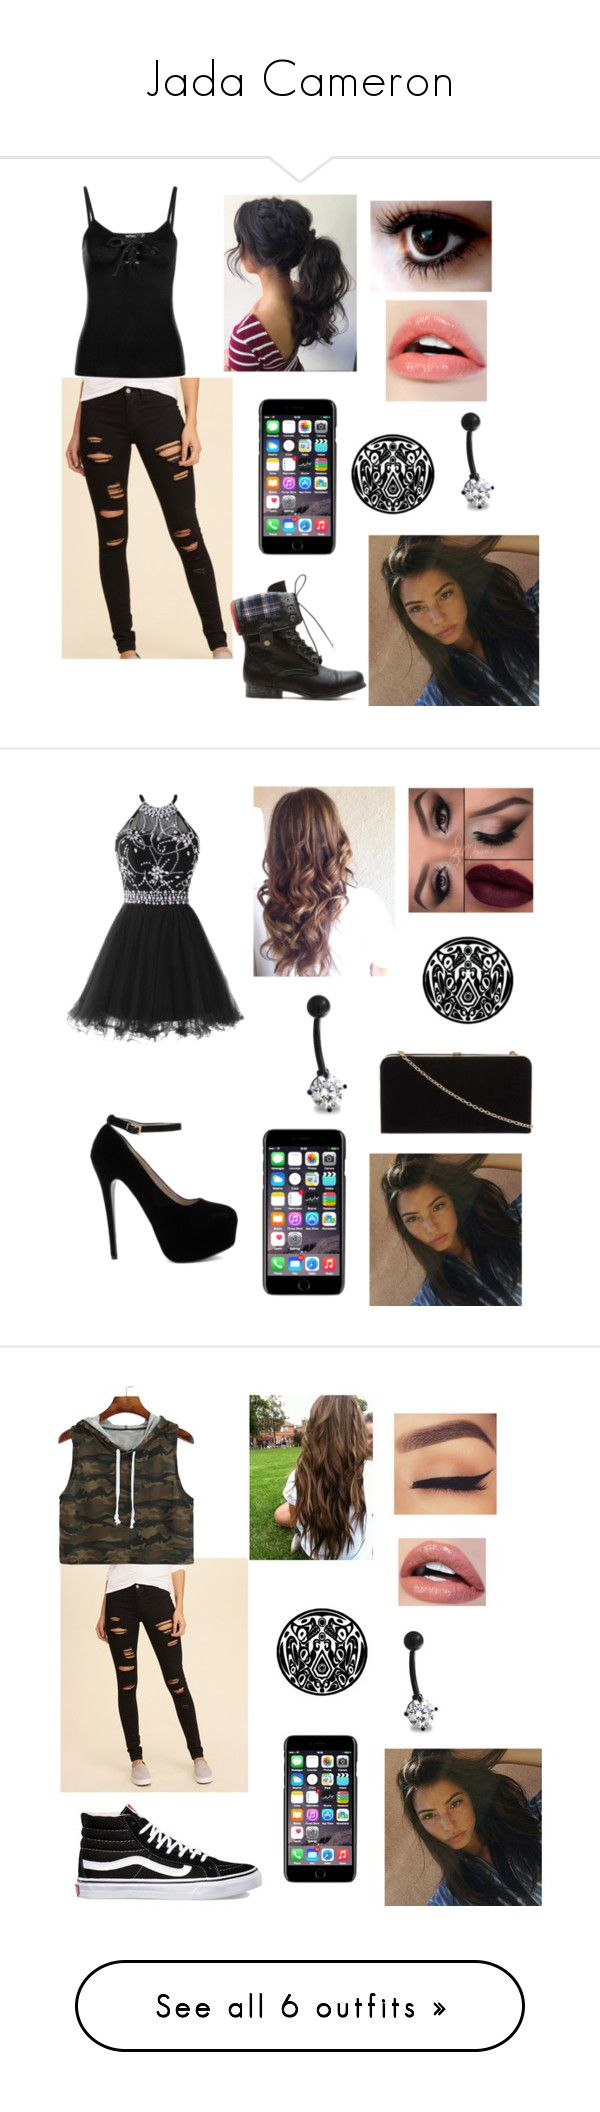 """""""Jada Cameron"""" by alyssa-lynch-07 ❤ liked on Polyvore featuring Bling Jewelry, Dolce&Gabbana, Hollister Co., Boohoo, Dorothy Perkins, Vans, Abercrombie & Fitch, Pilot and T-shirt & Jeans"""